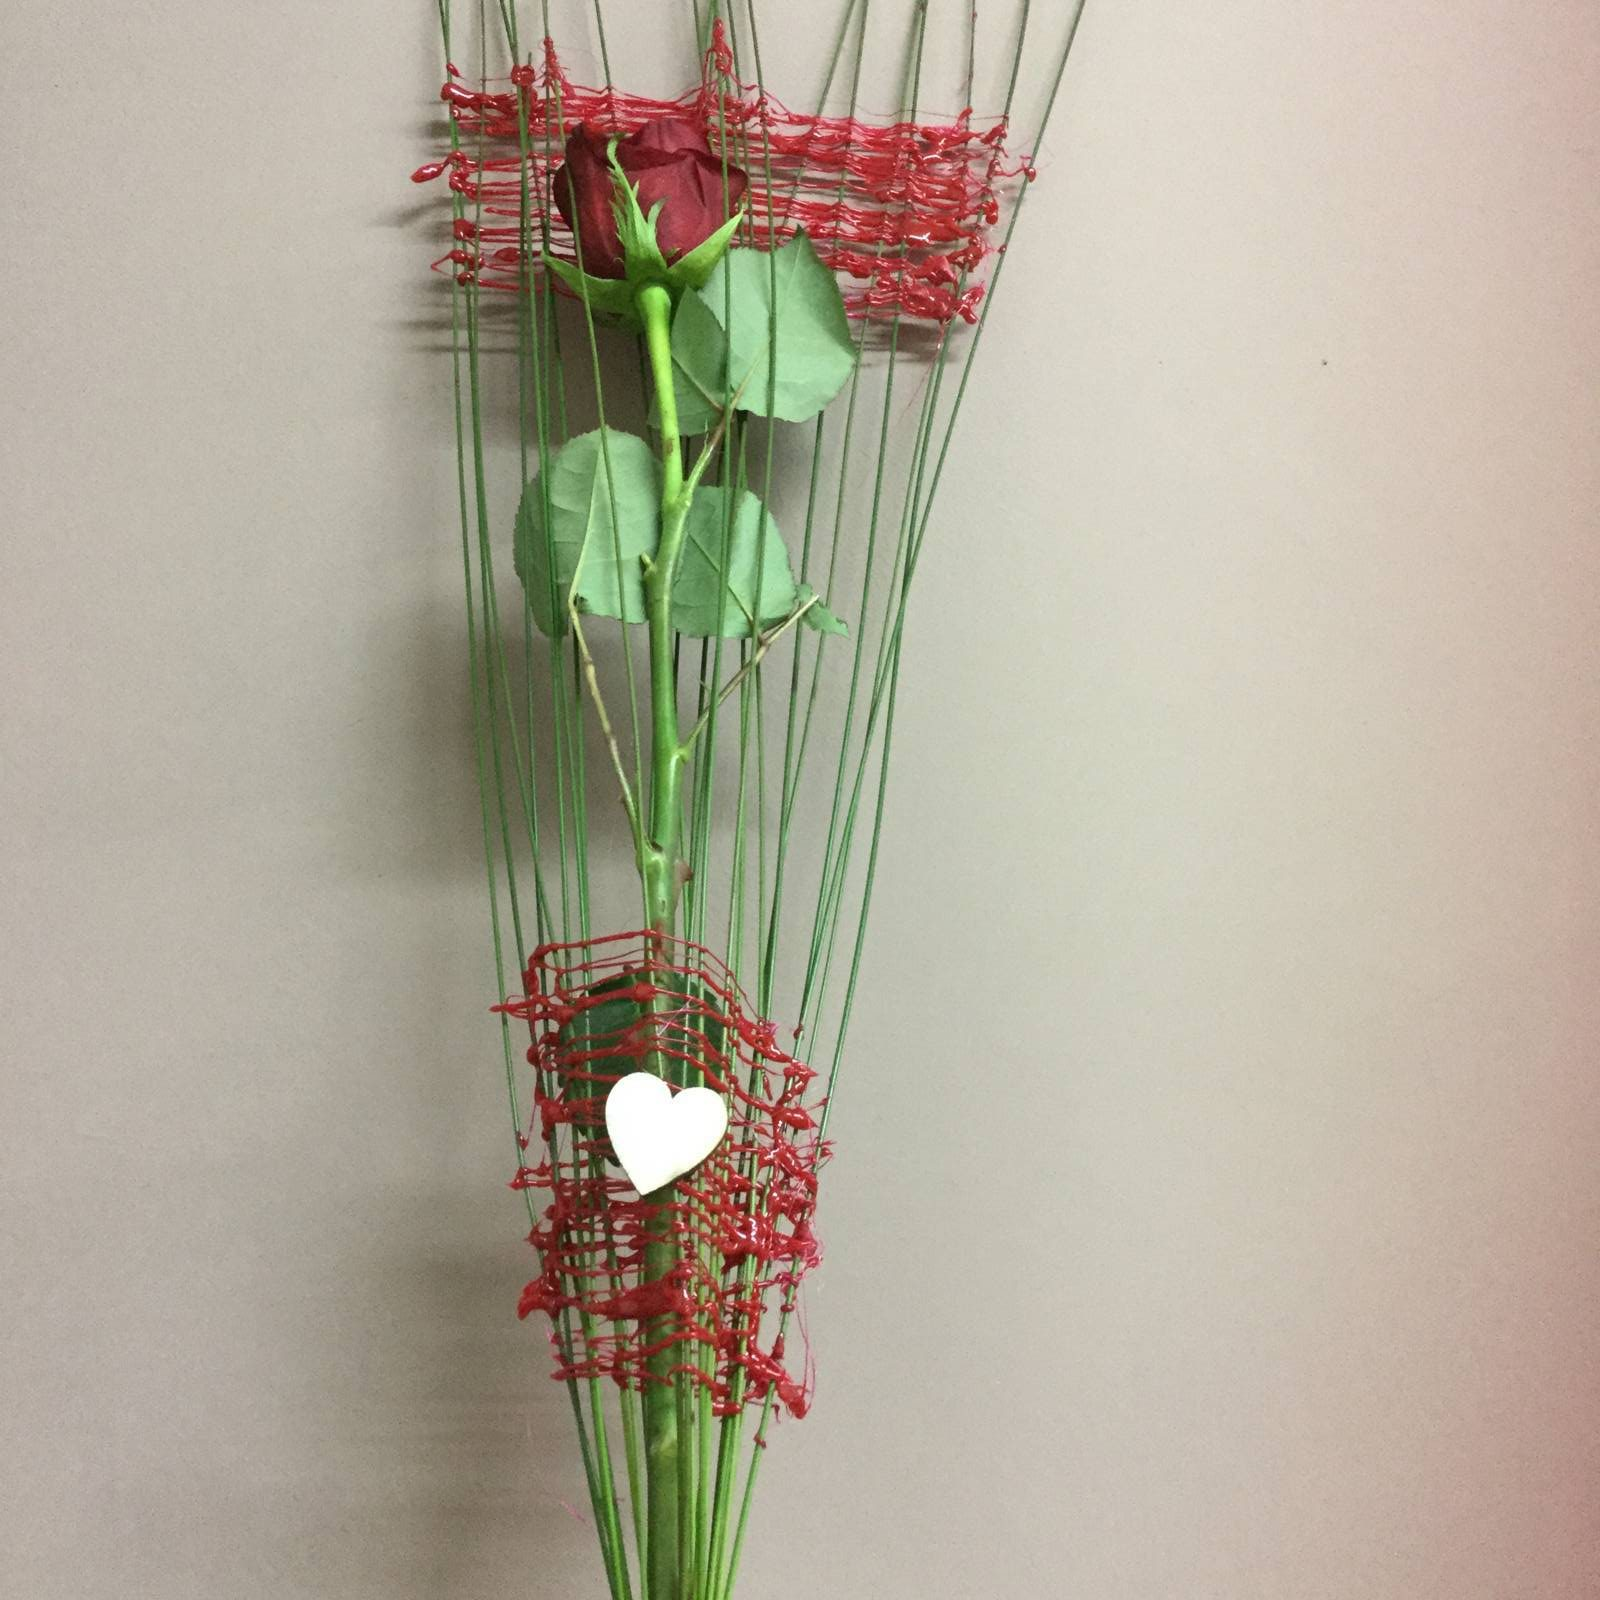 Bouquet of flowers for Valentine's Day - Flowers and Marilena Ideas